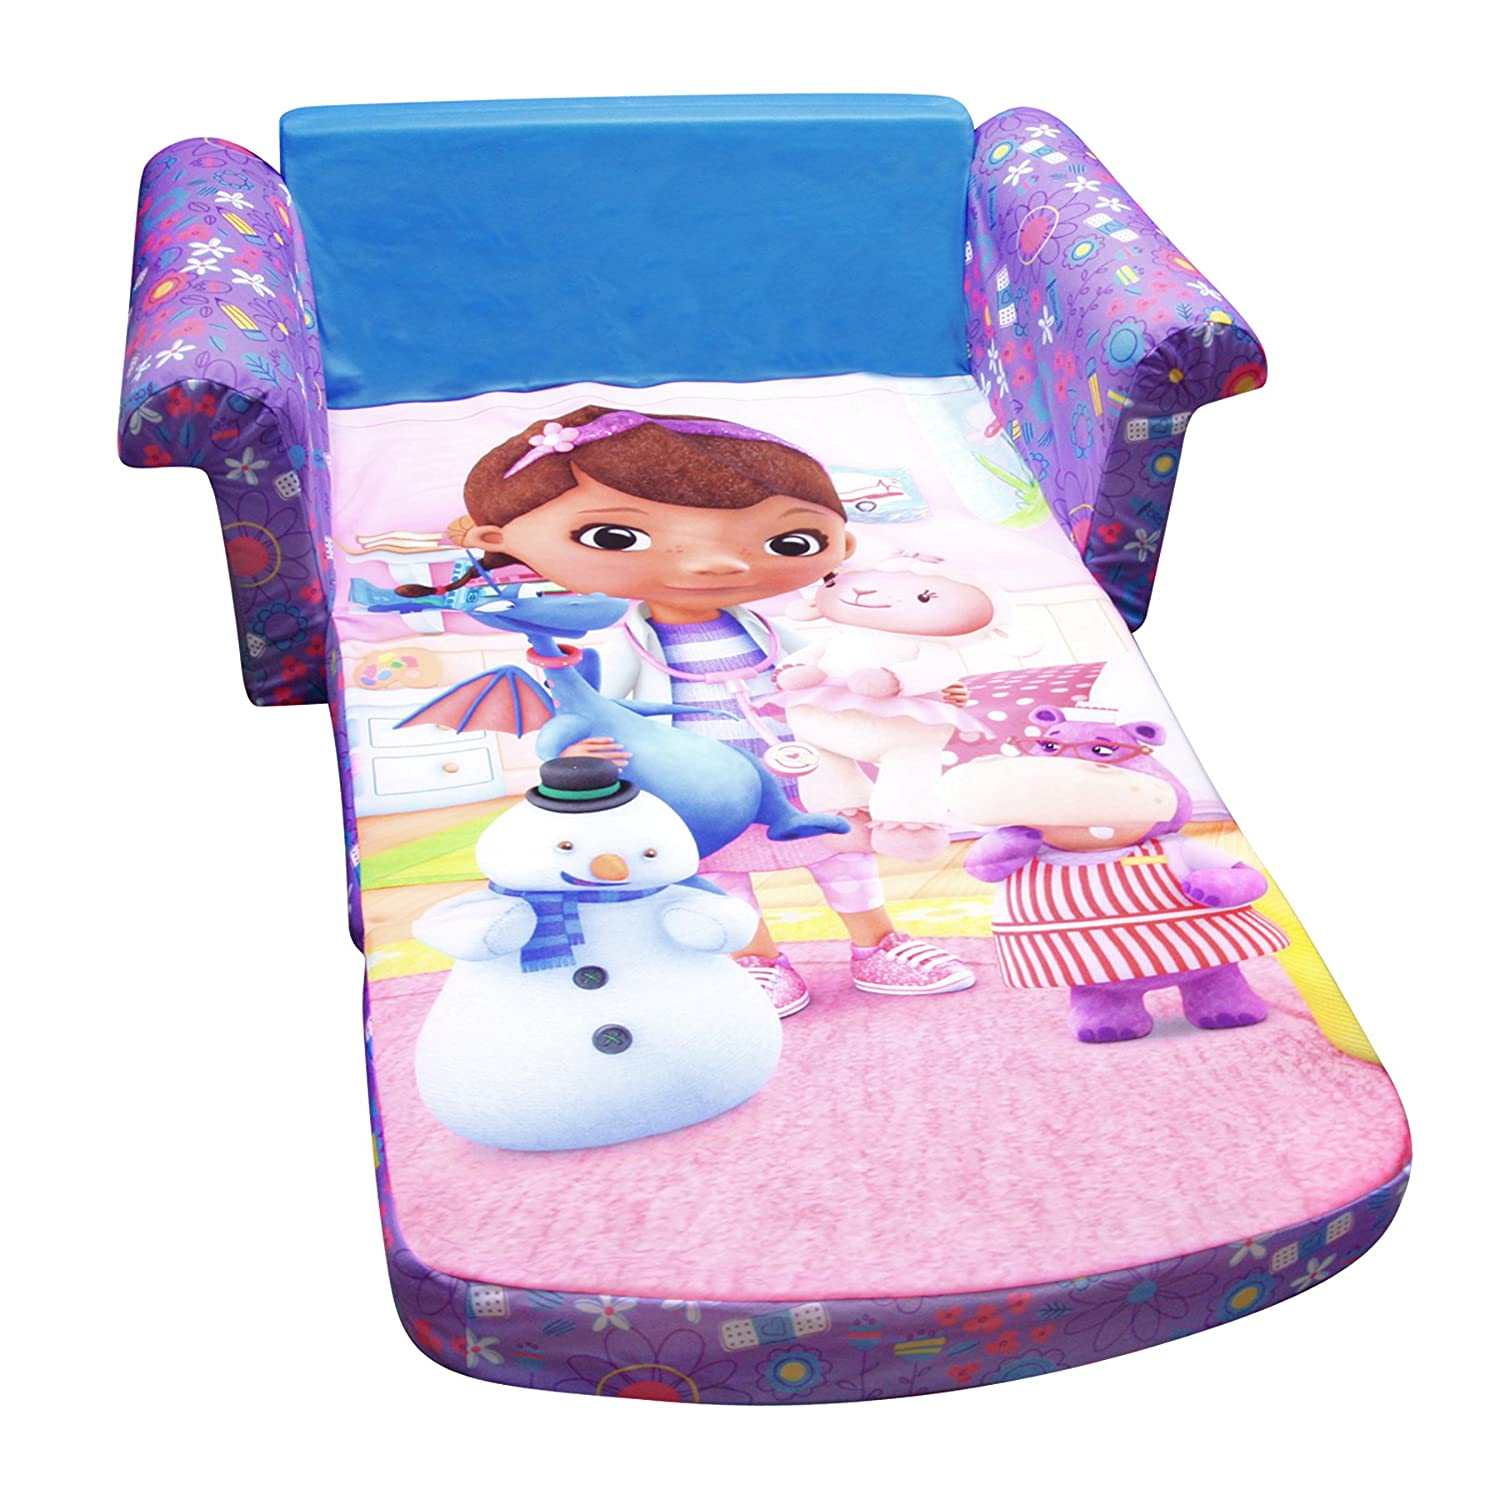 Fun sofa beds for kids and teens christmas gifts for for Divan para ninos